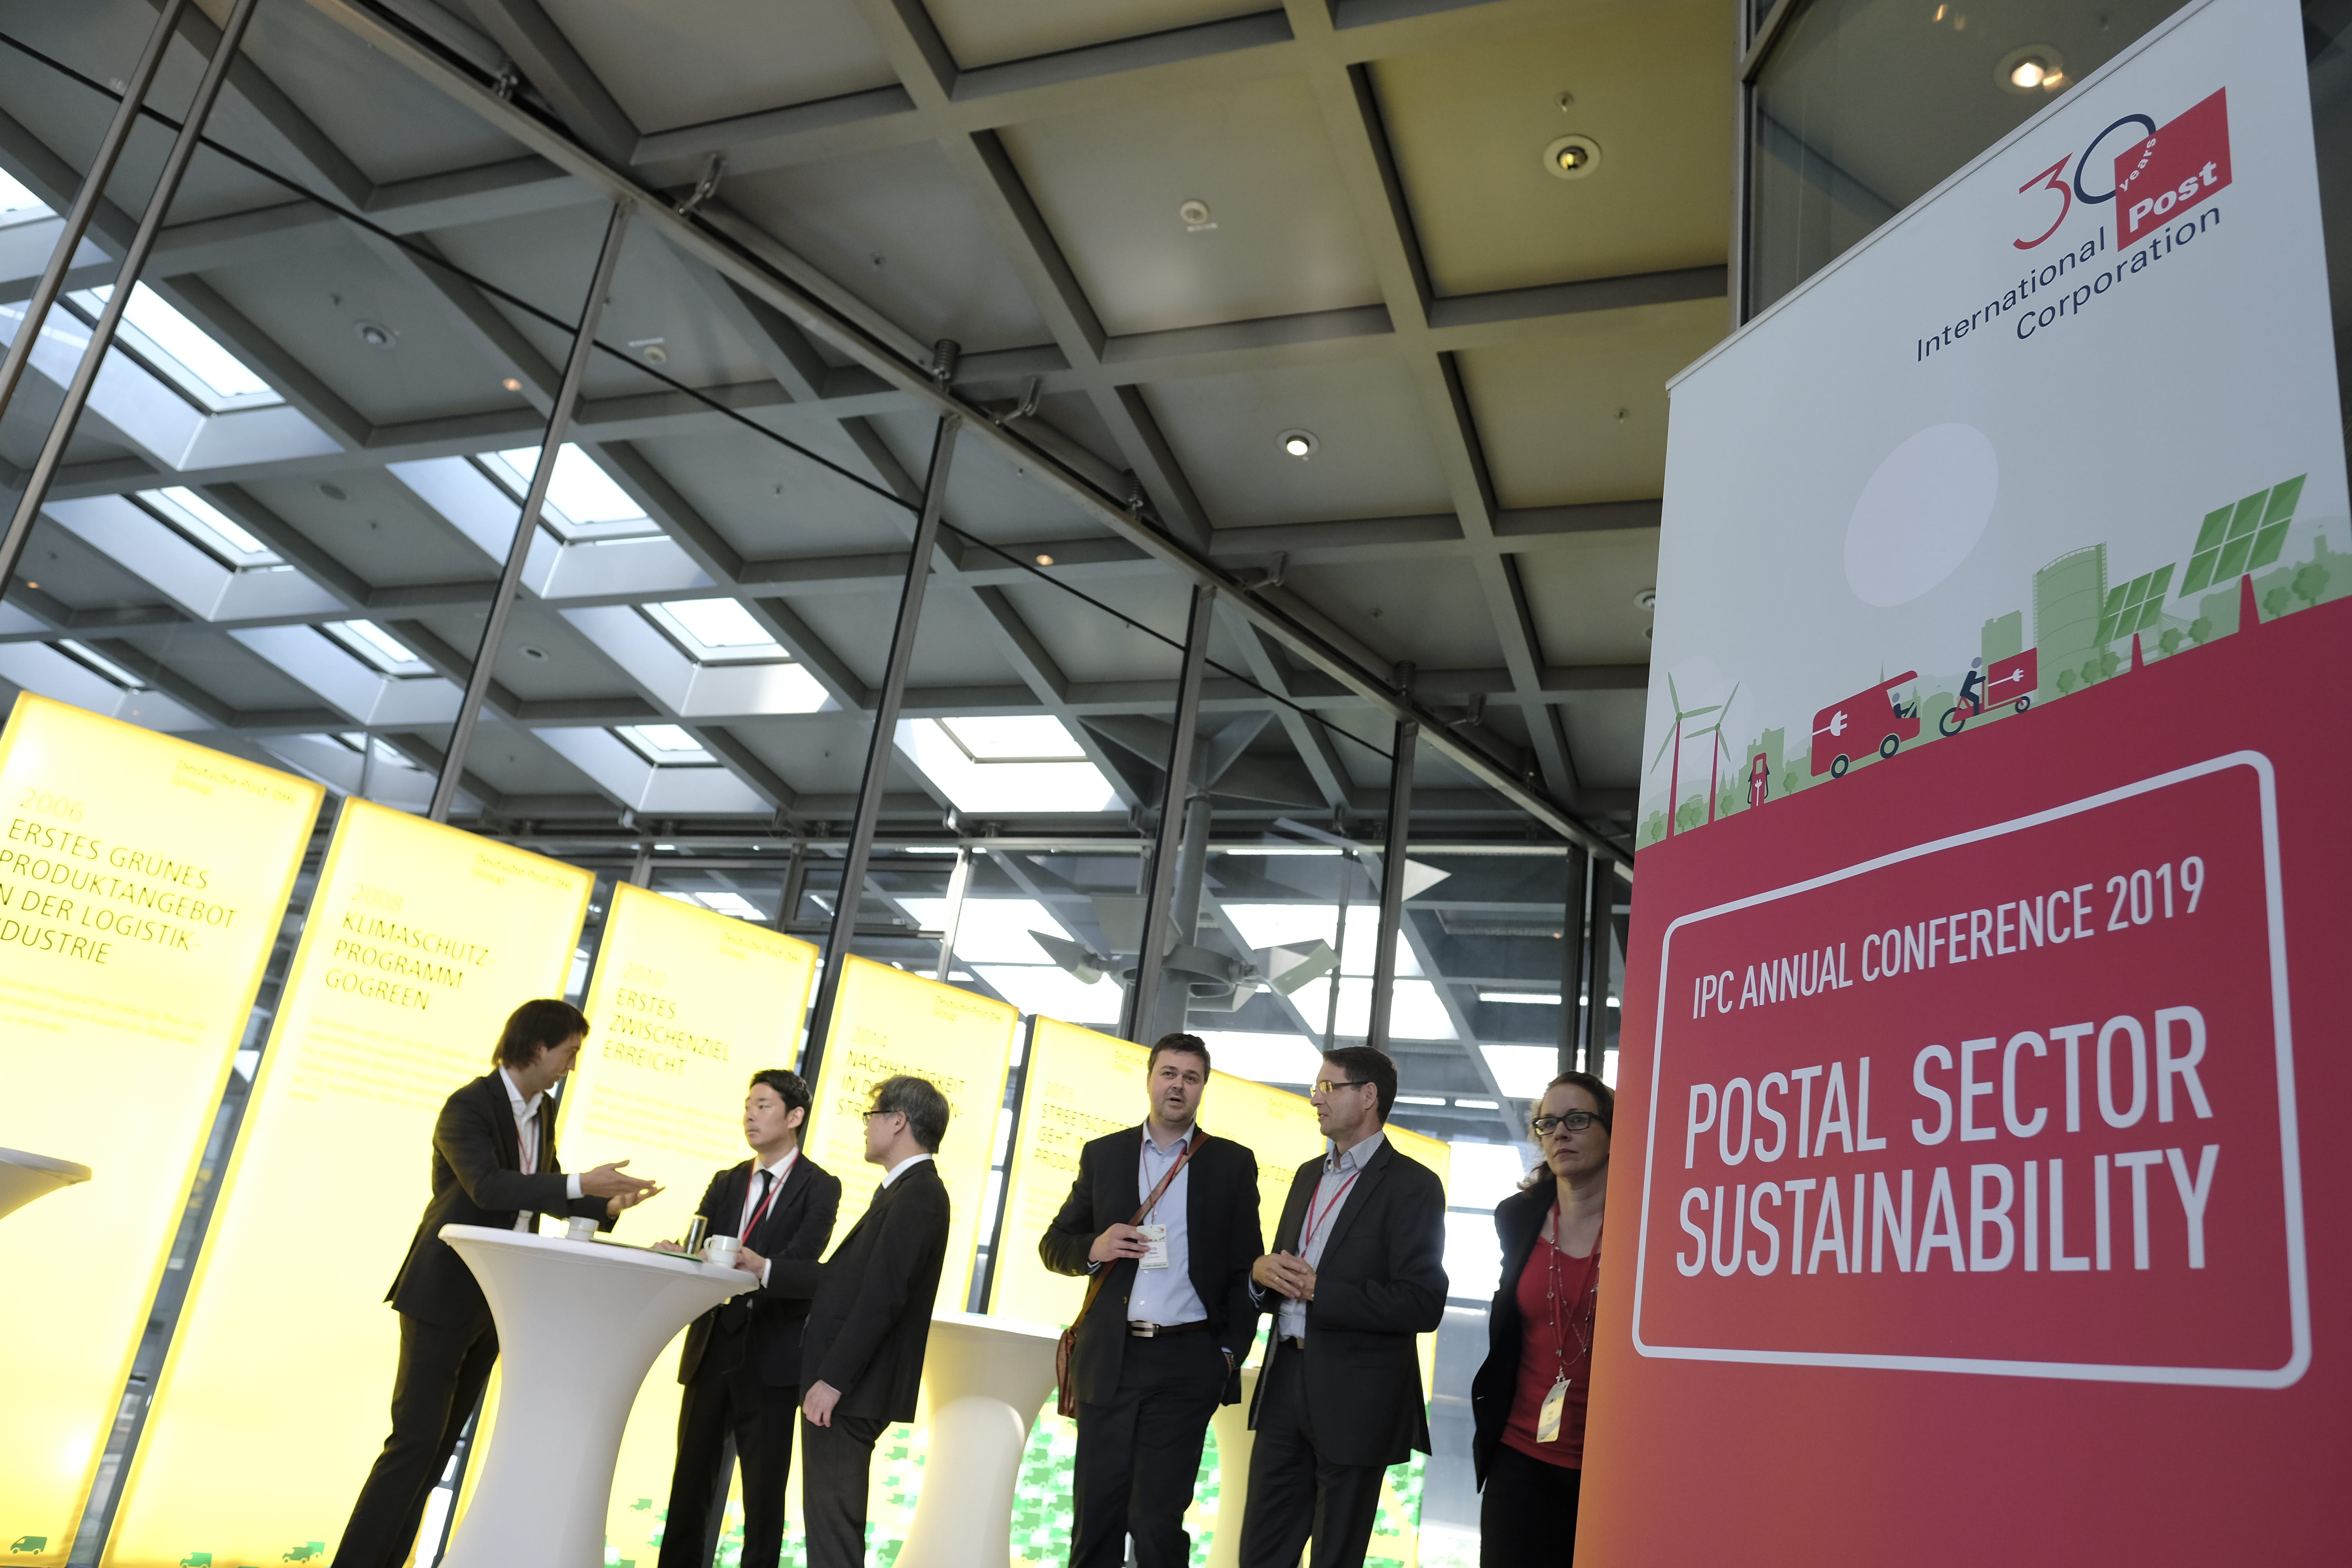 IPC Annual Conference 2019 - Postal Sector Sustainability